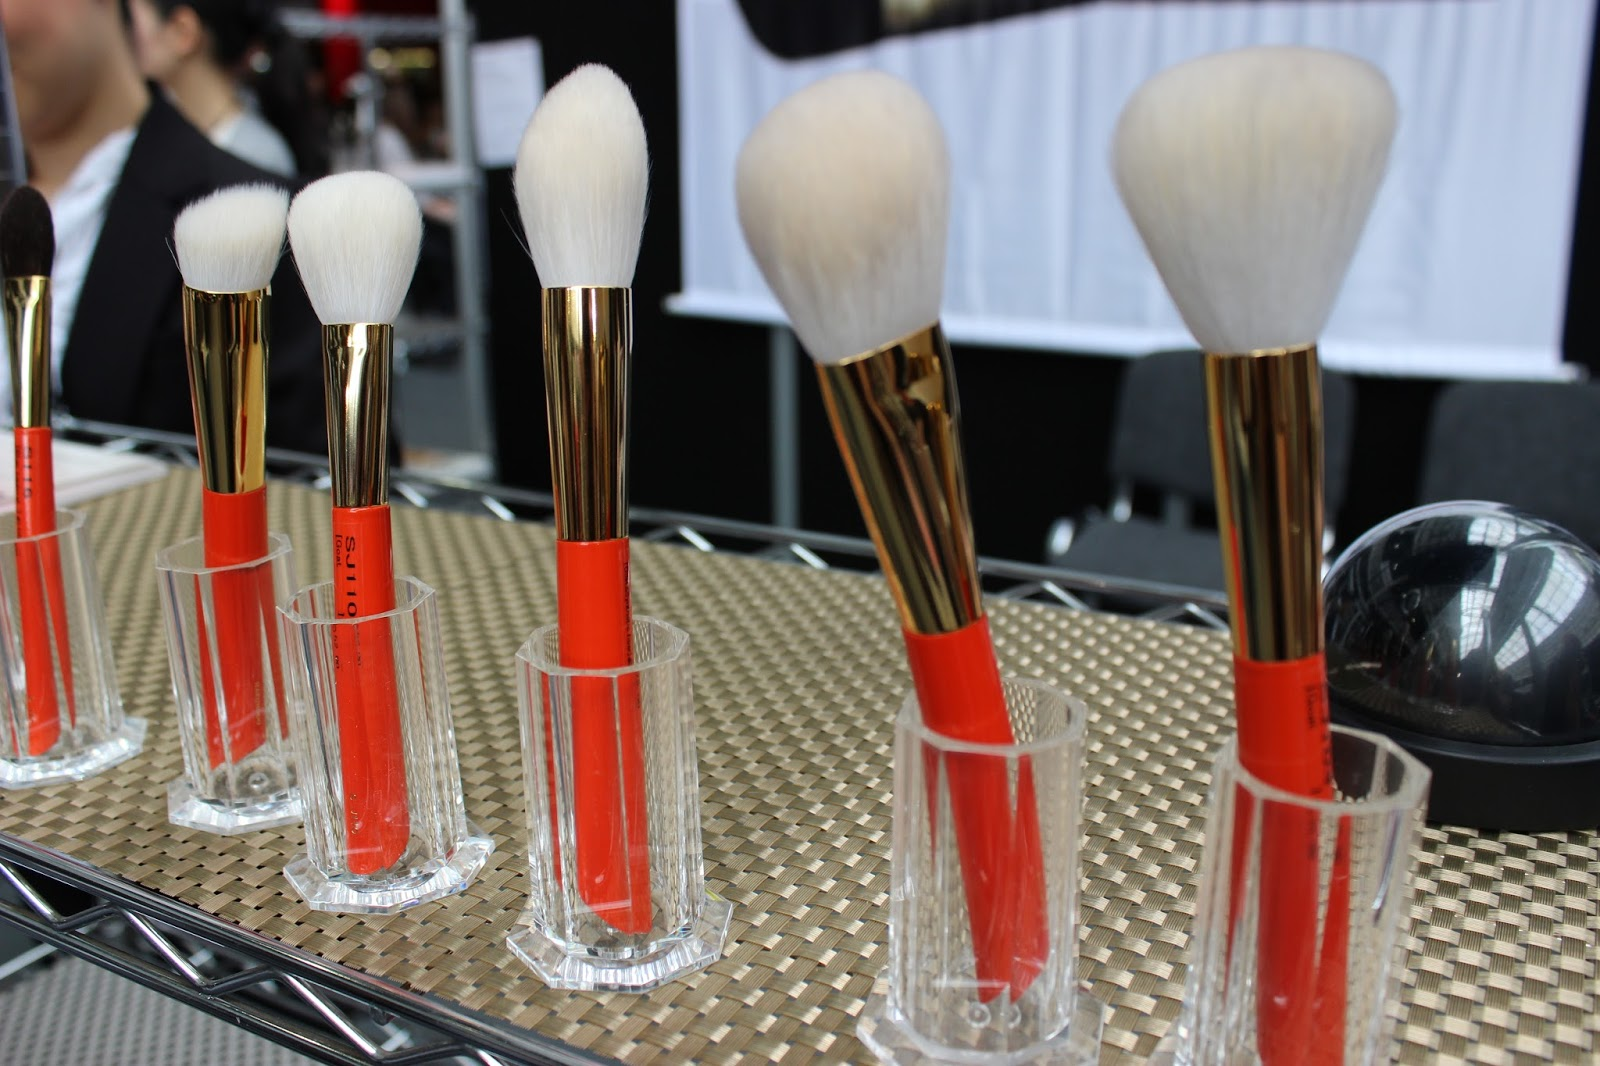 IMATS london 2014 hakuhodo makeup brushes